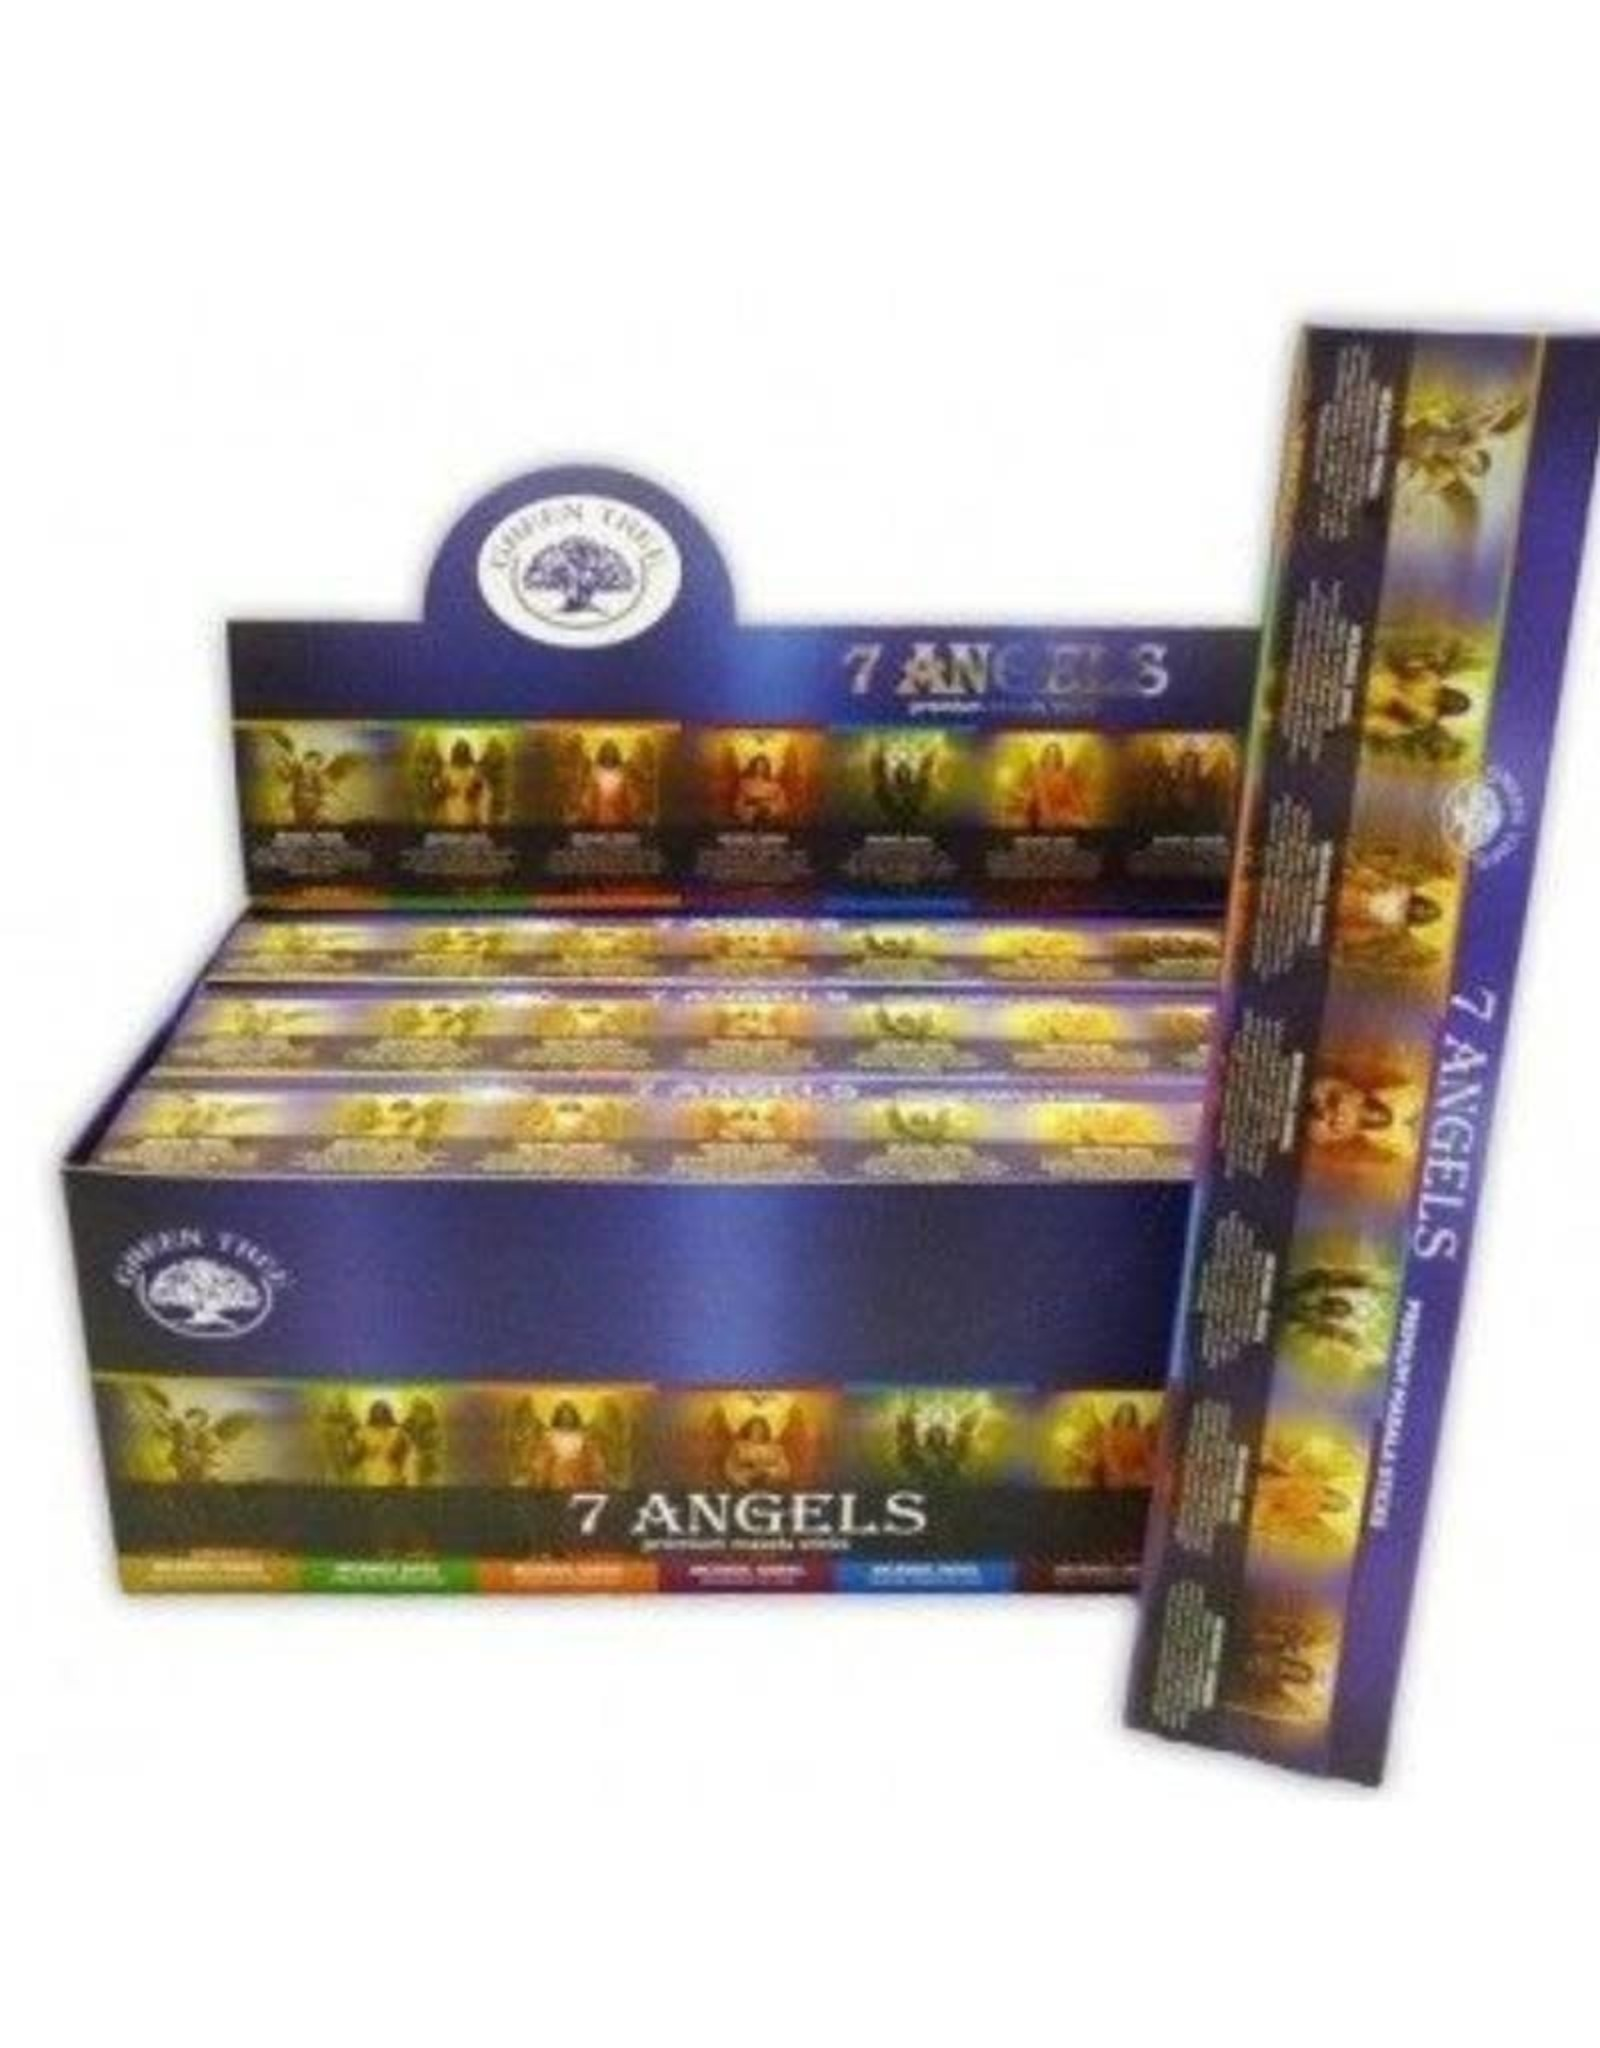 Green Tree 7 Angels Incense Sticks